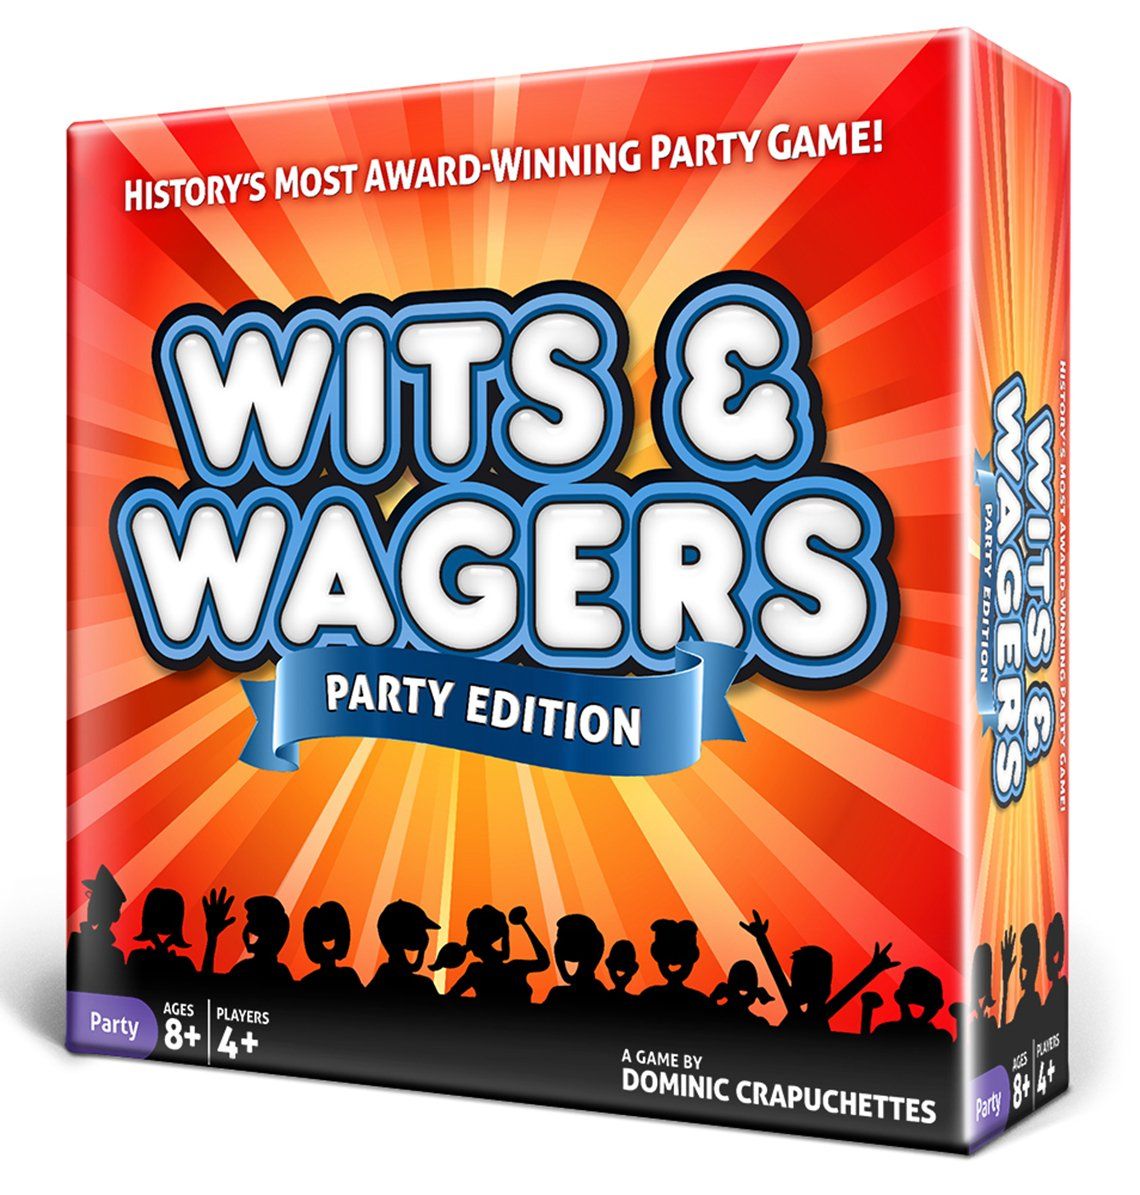 """Wits and Wager game box with text that also reads """"History's Most Award-Winning Party Game!"""" """"Party Edition"""""""